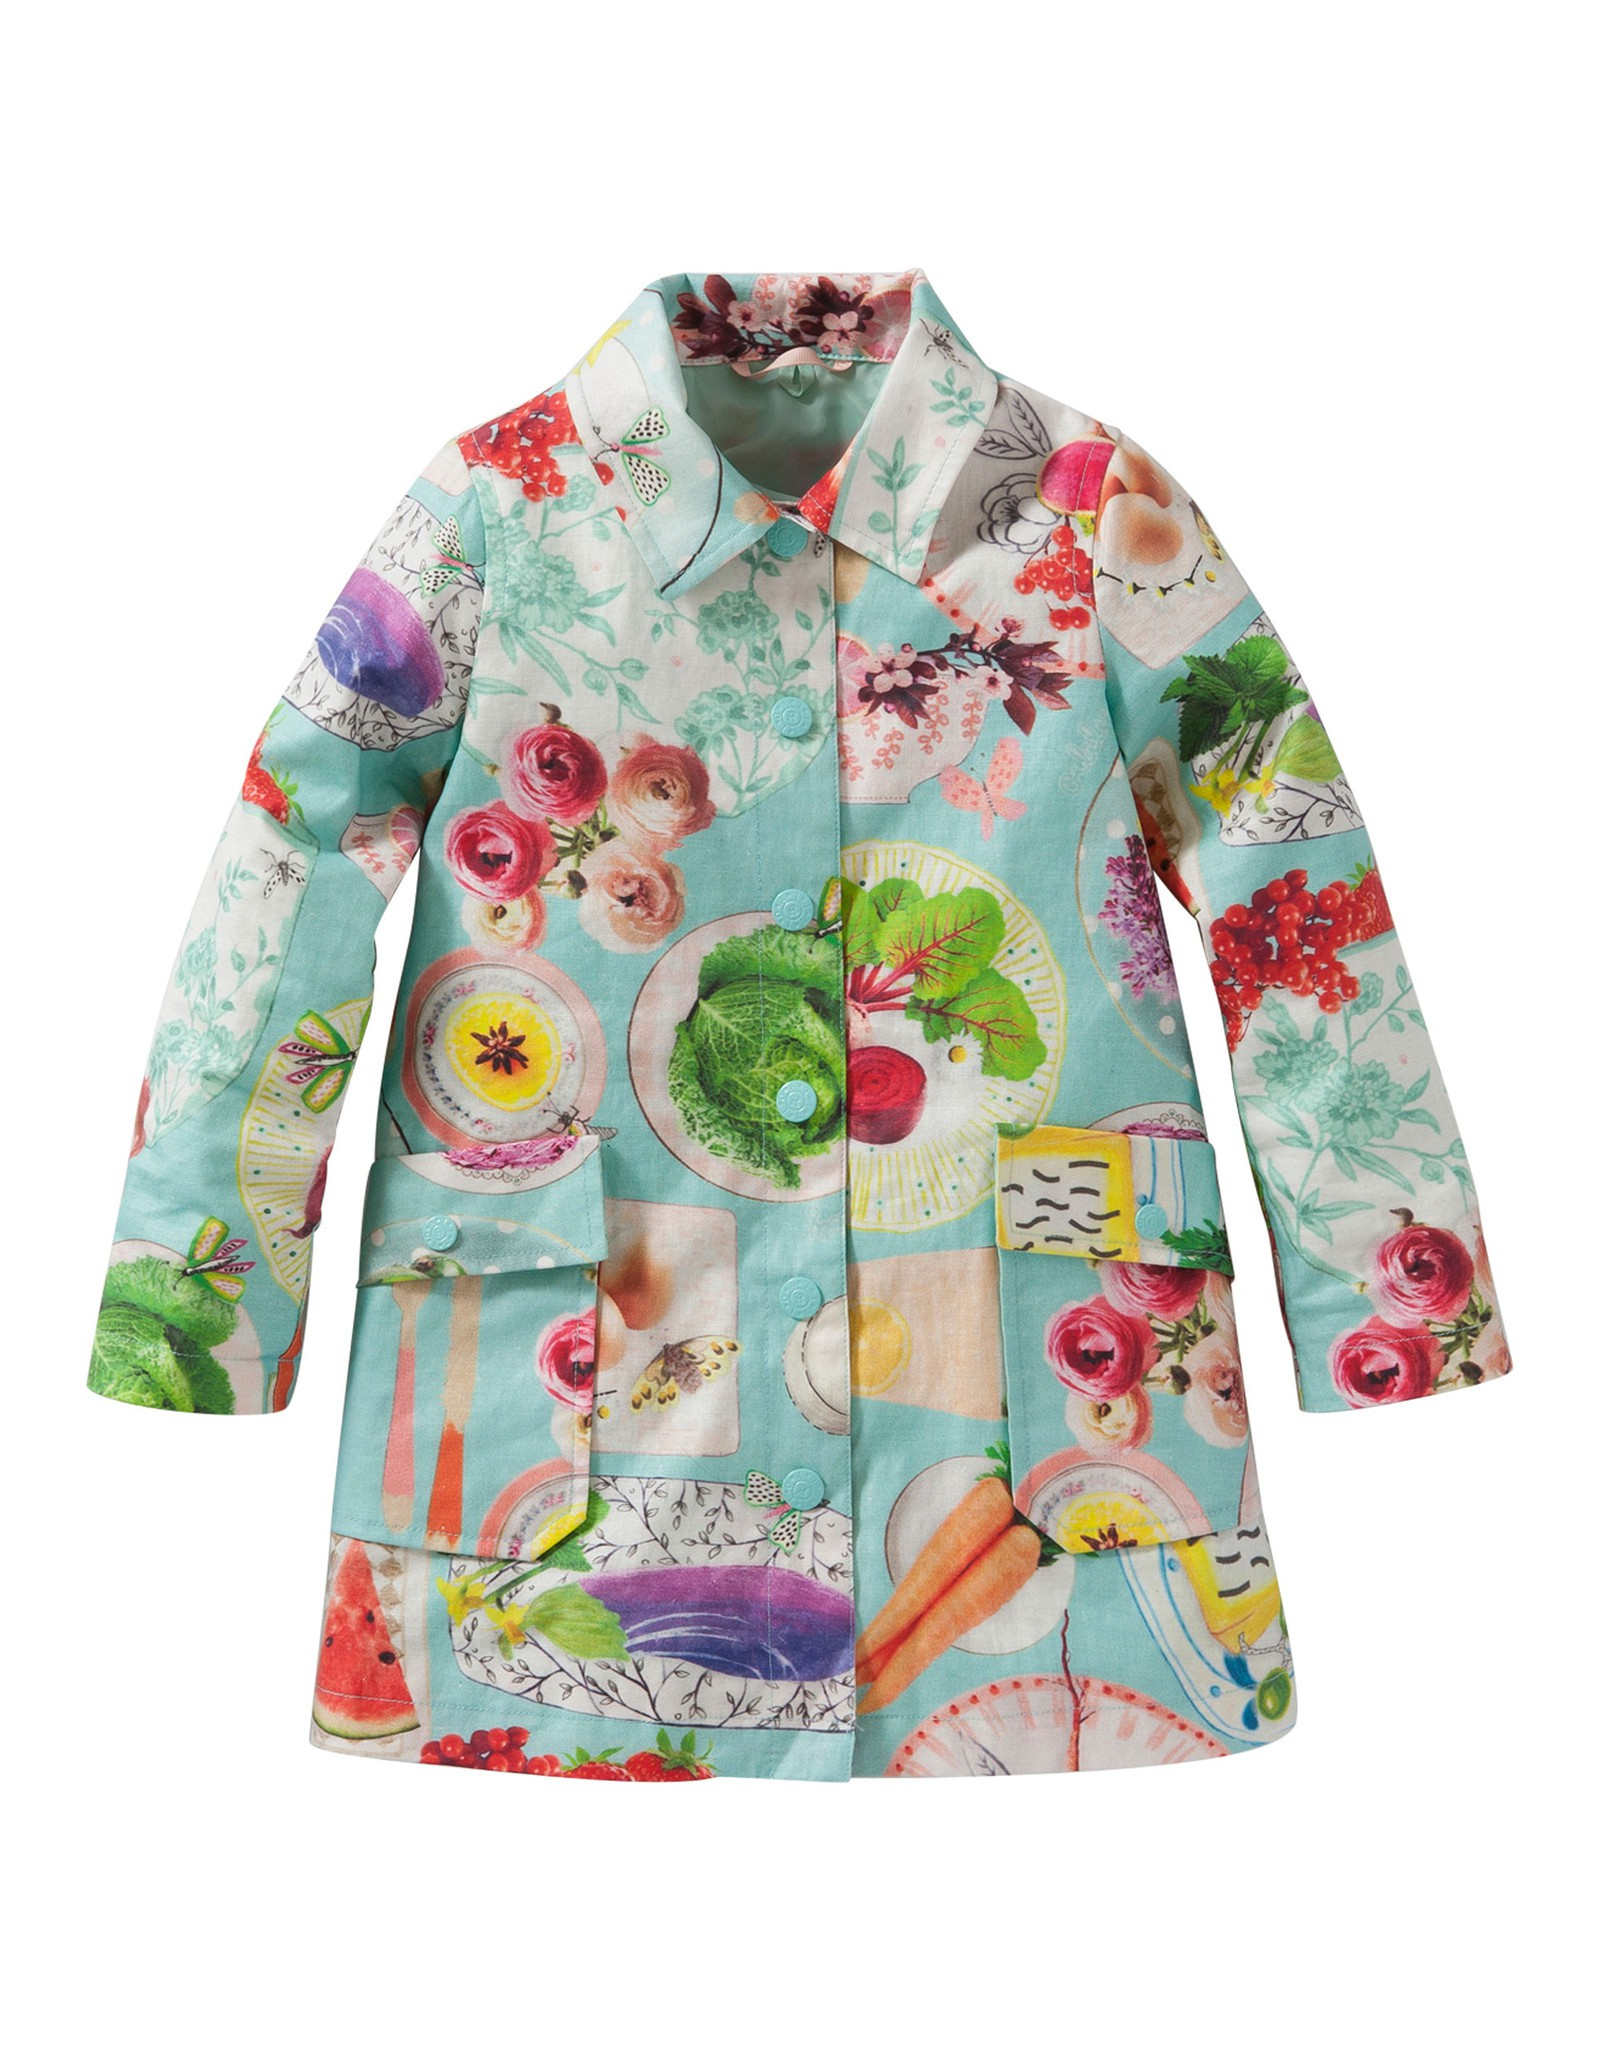 Chelsea picknick coat